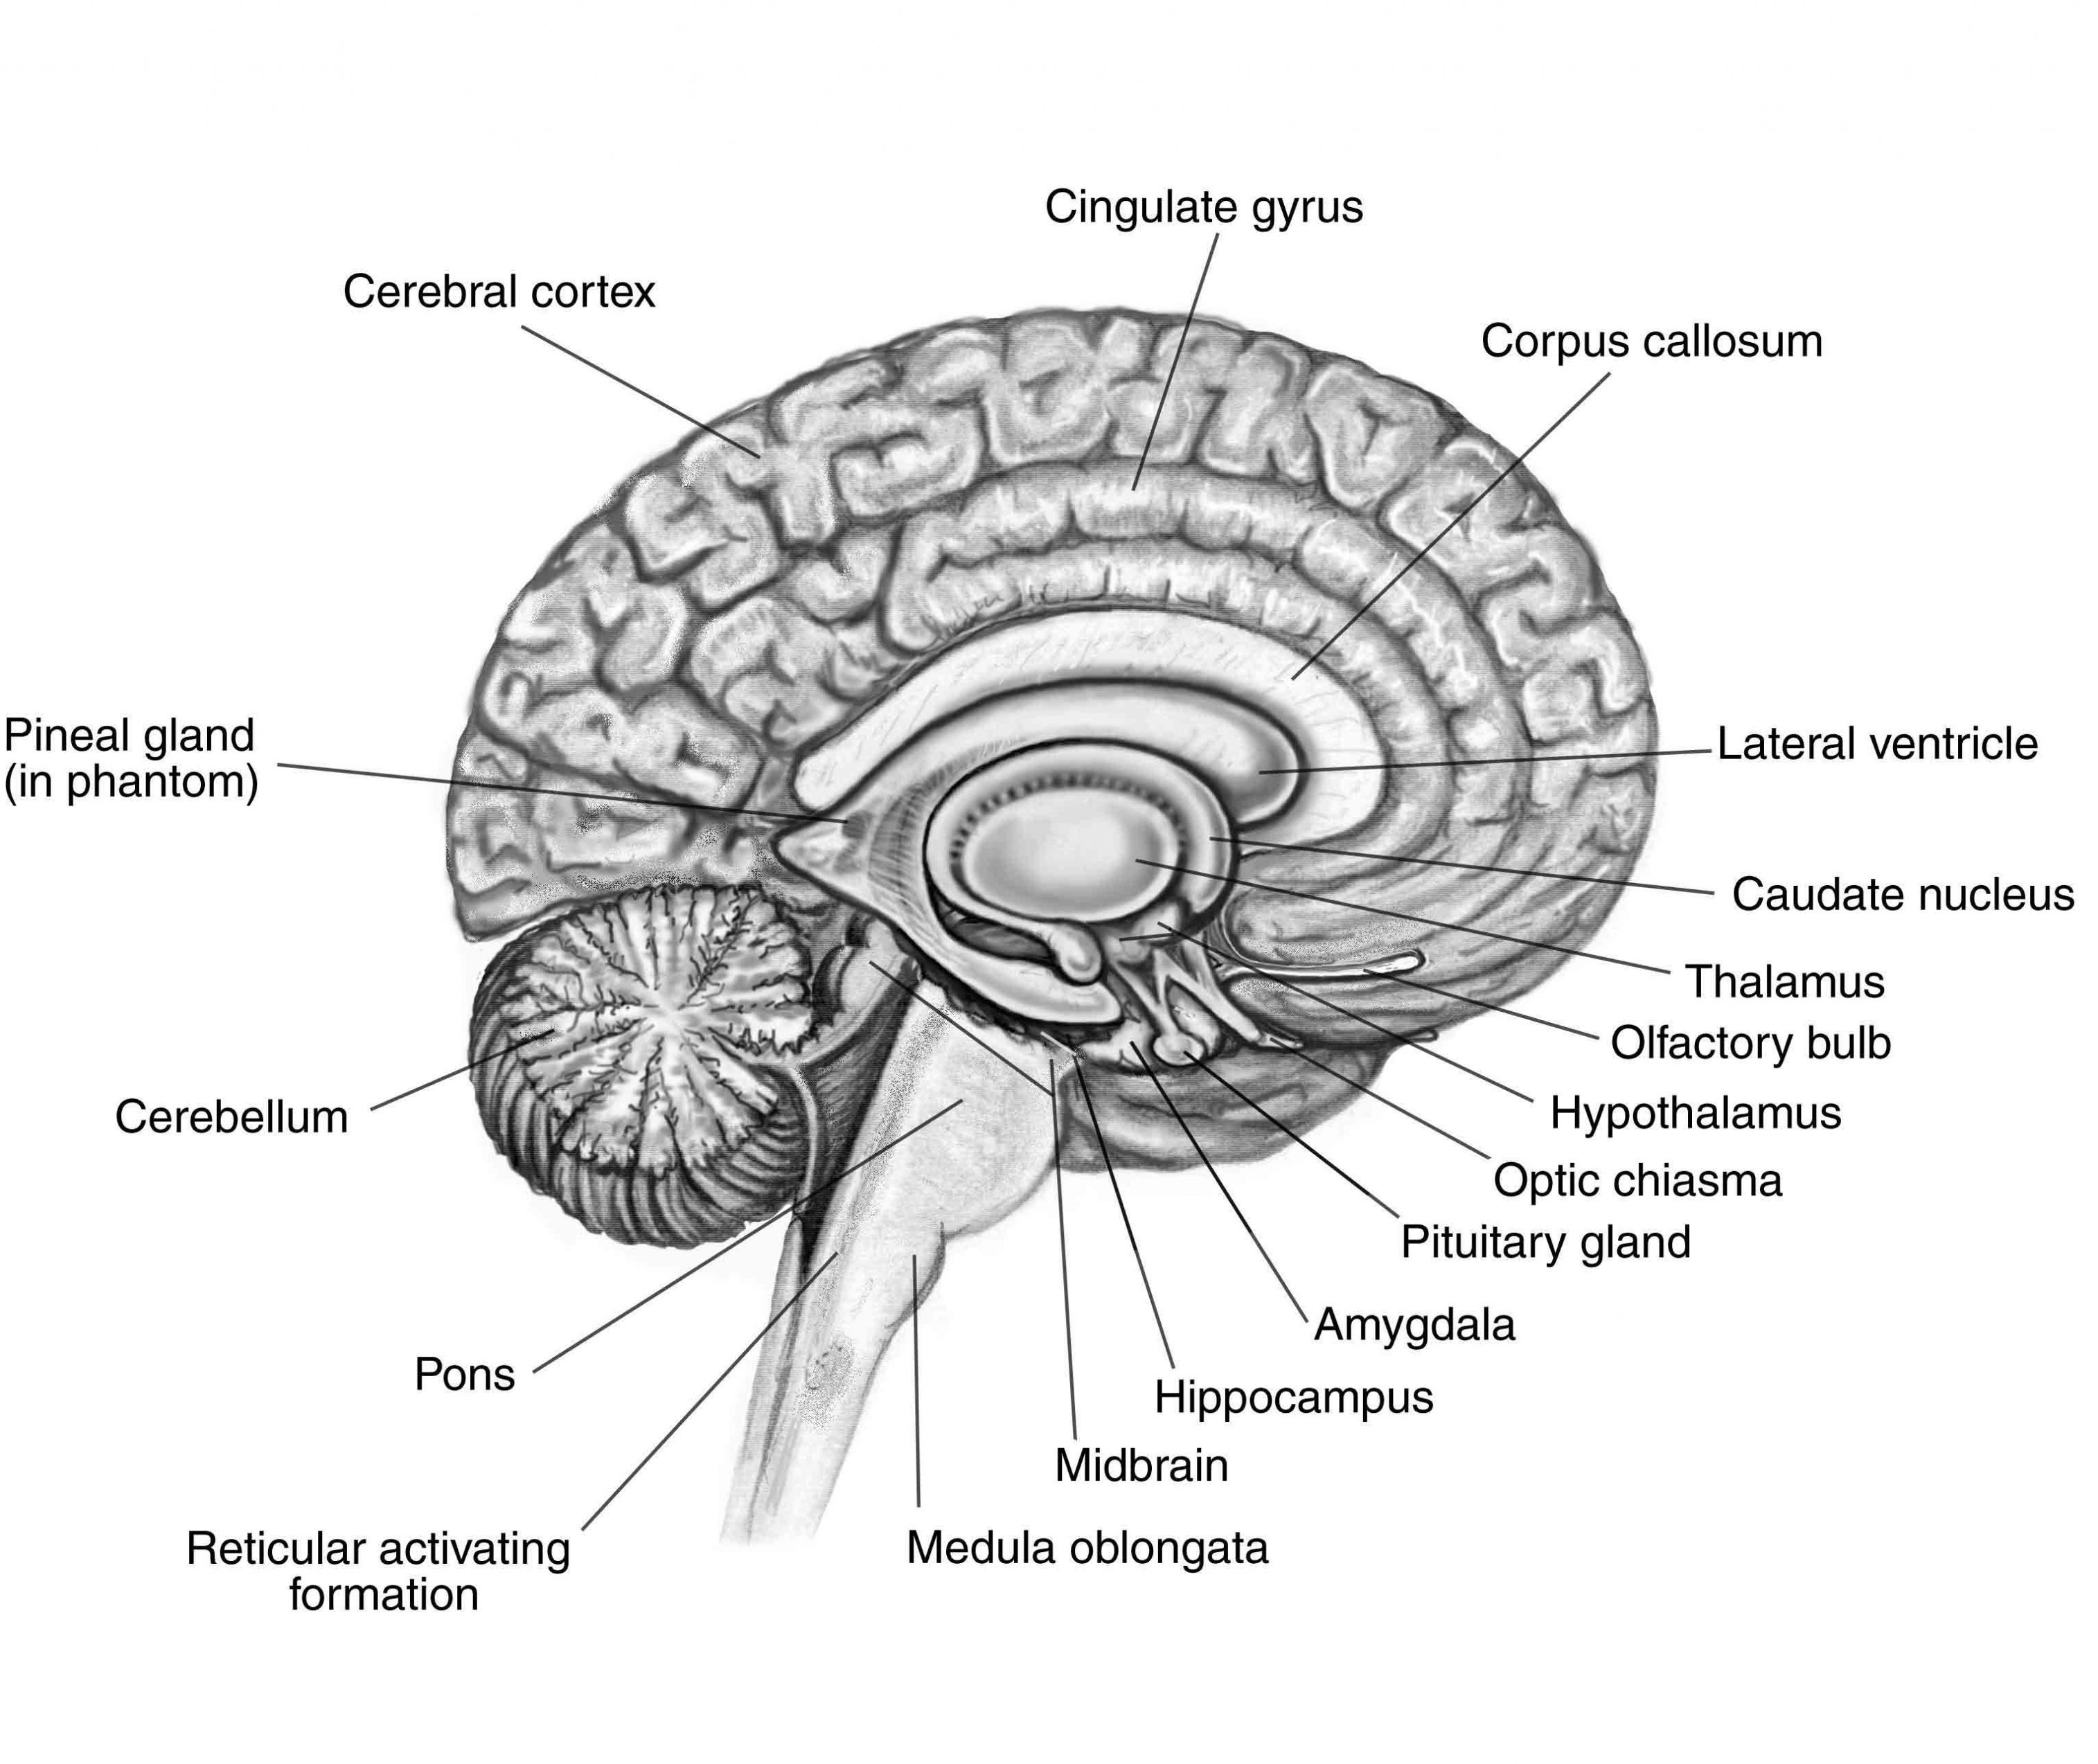 Labeled Parts Of The Brain Labeled Parts Of The Brain Brain Diagram Labeled Inner Brain Regions Blank H Brain Diagram Brain Parts And Functions Brain Mapping